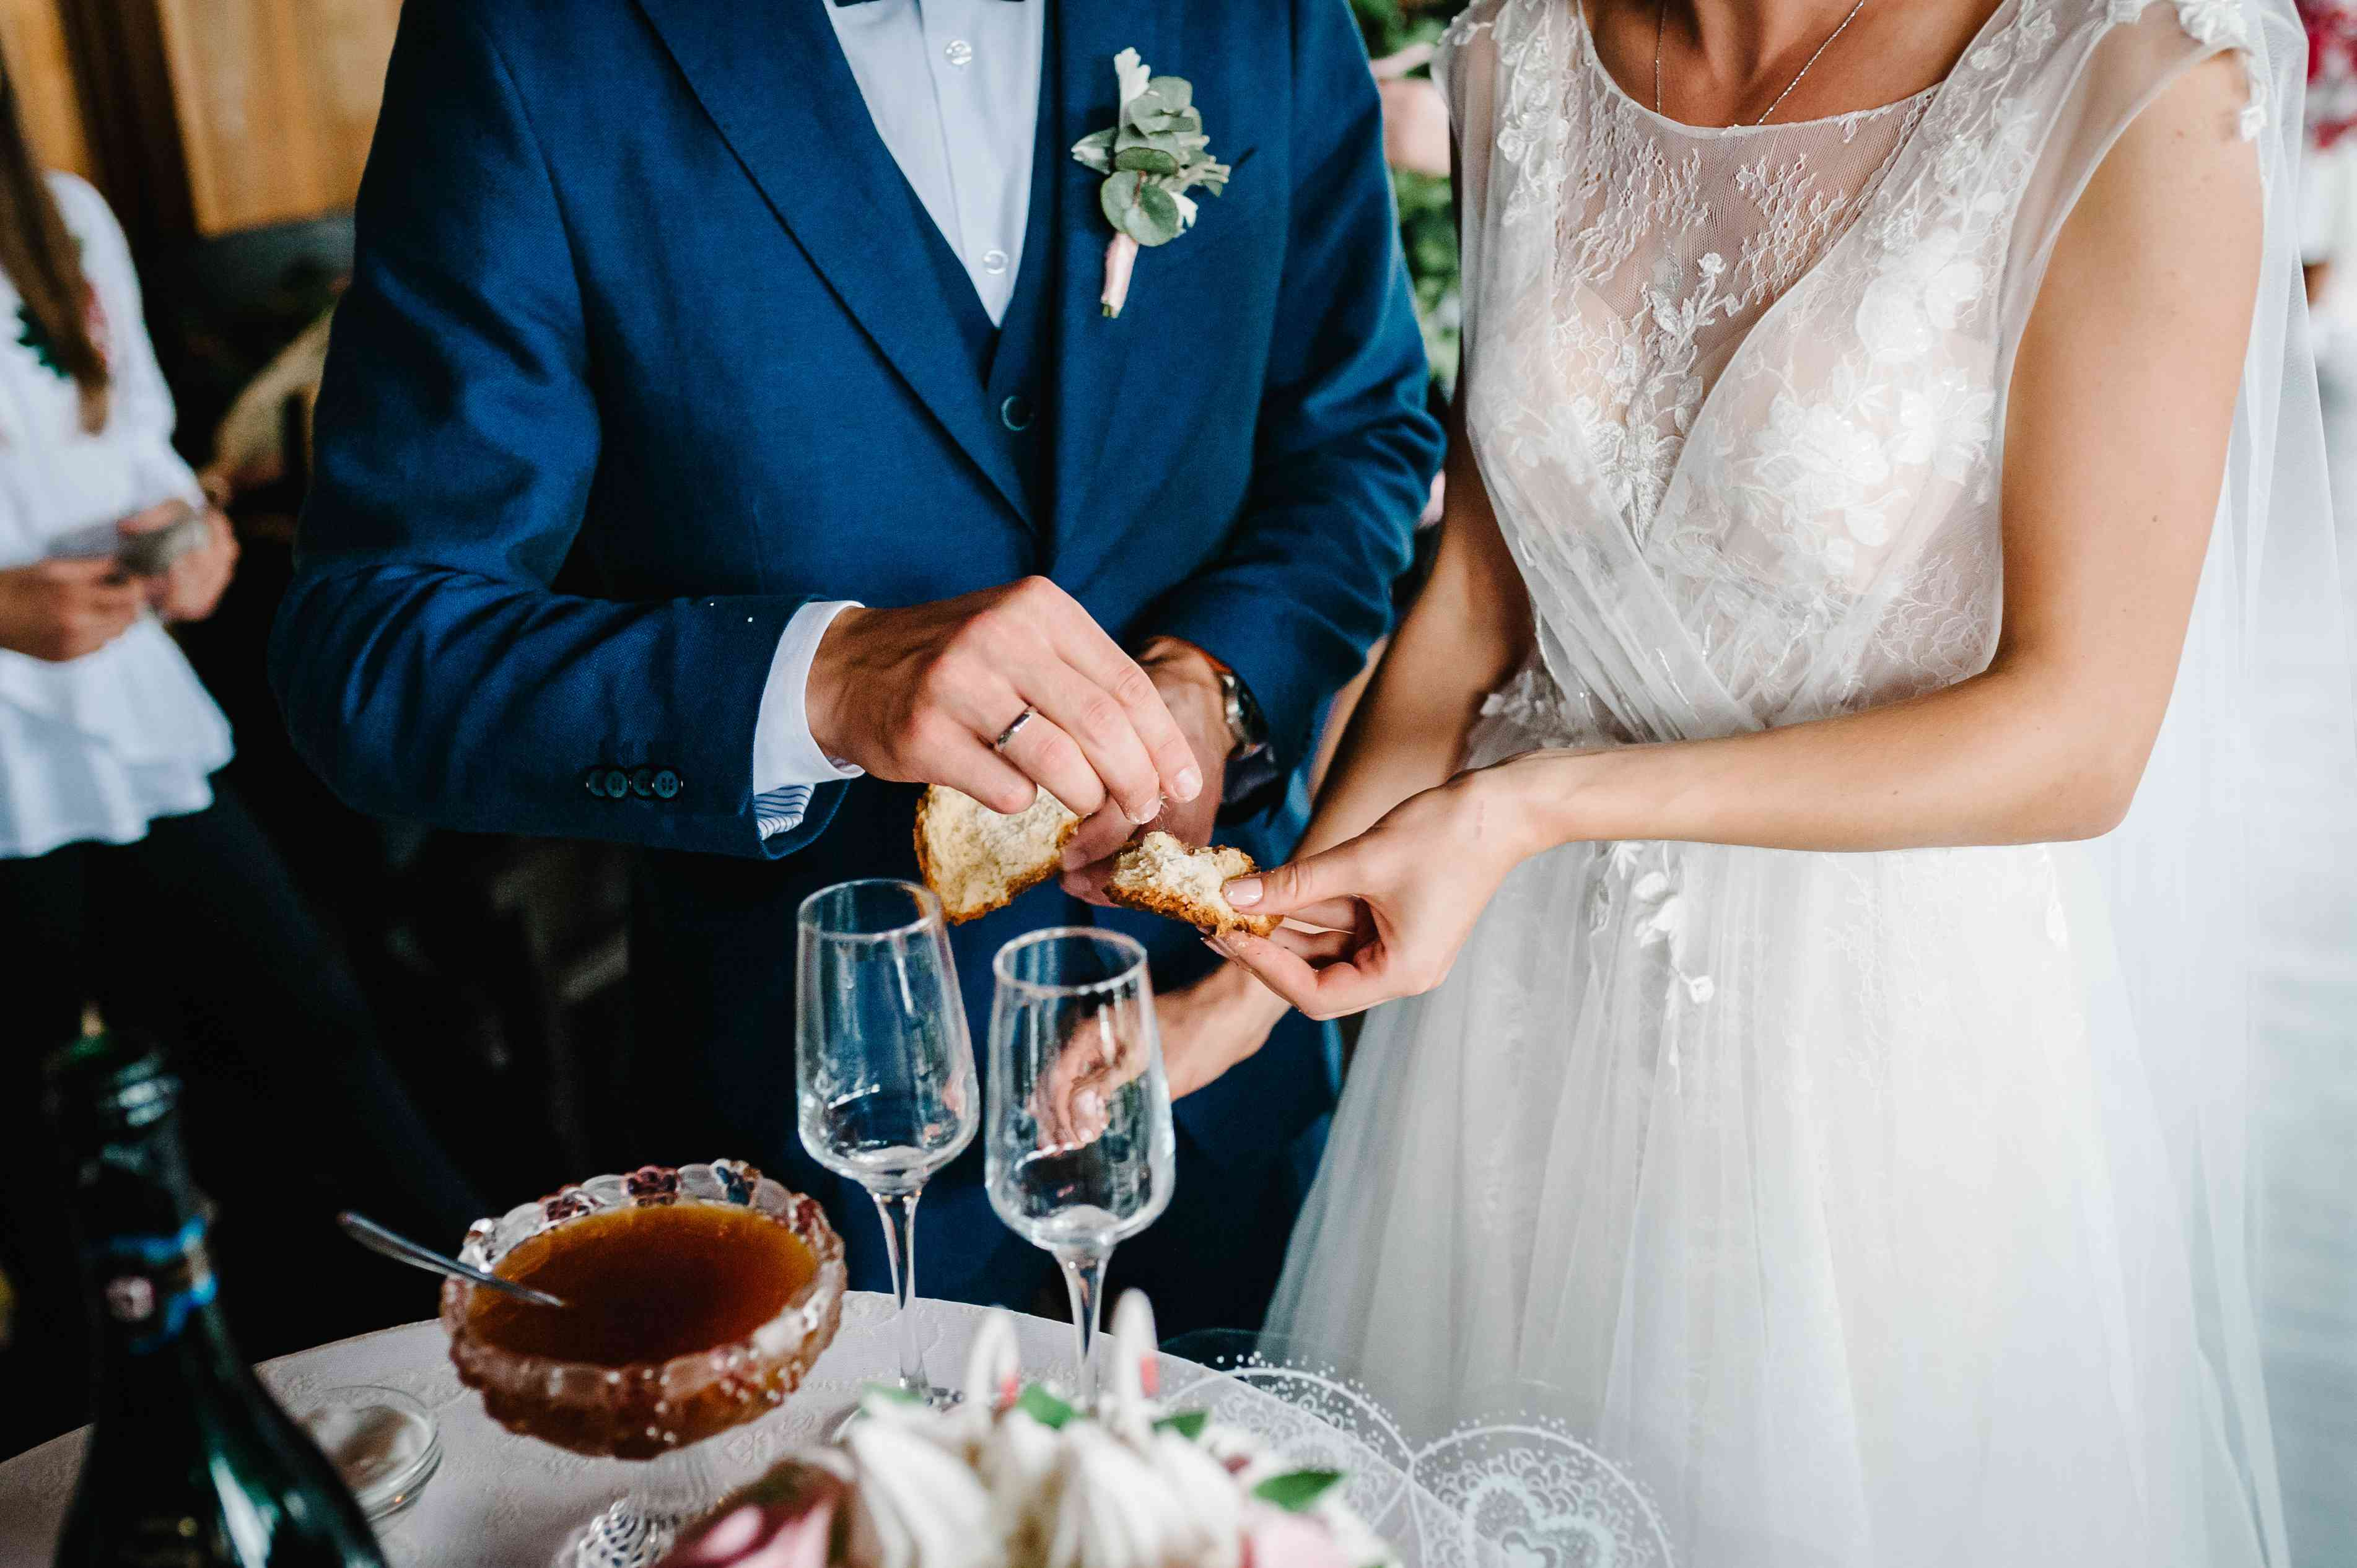 Breaking Away: Traditional Wedding Practices to Cut and Change